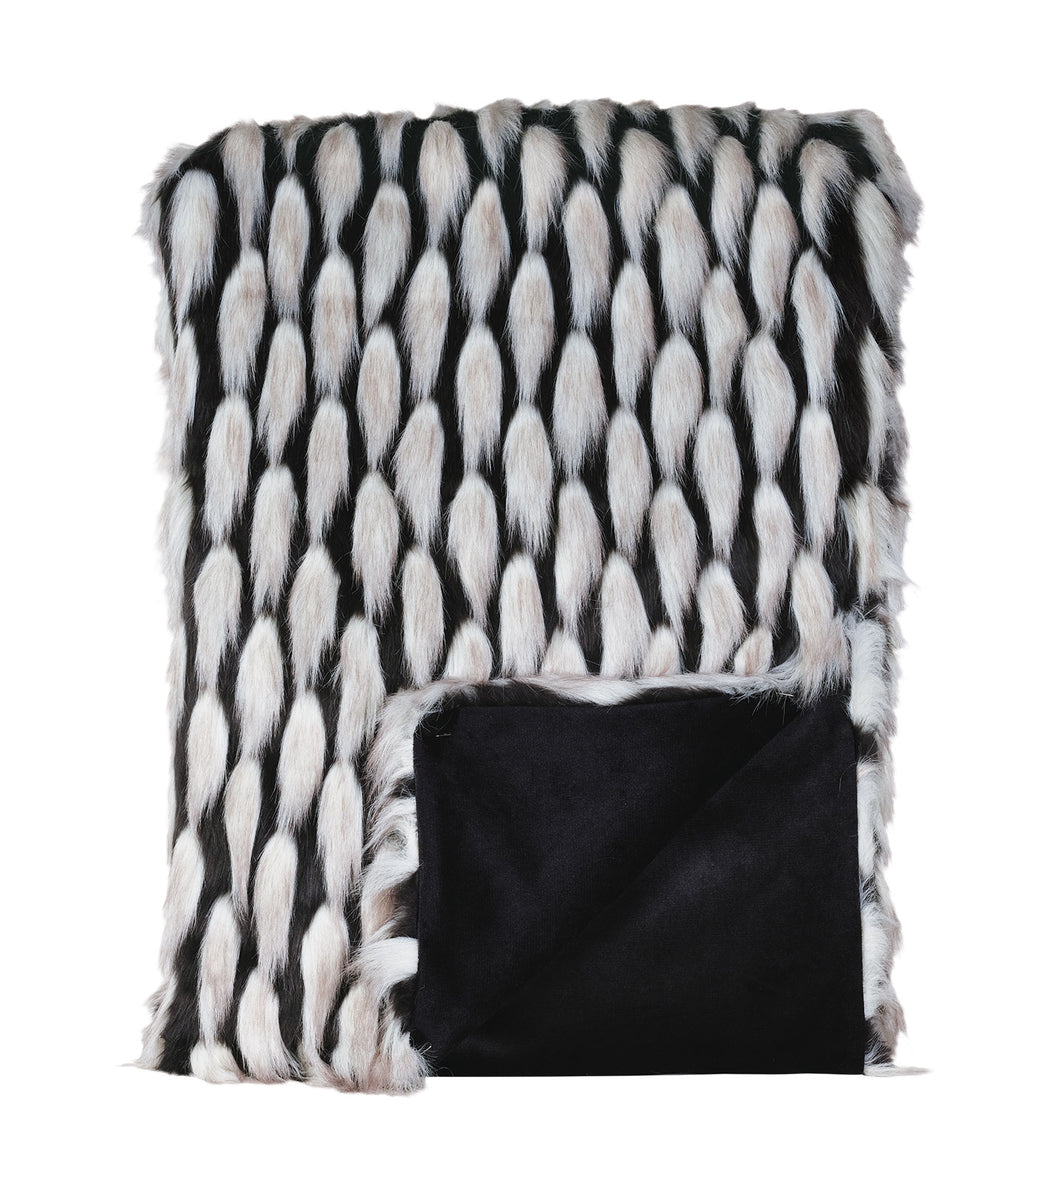 Black and Silver Luxe Glamour Faux Fur Throw